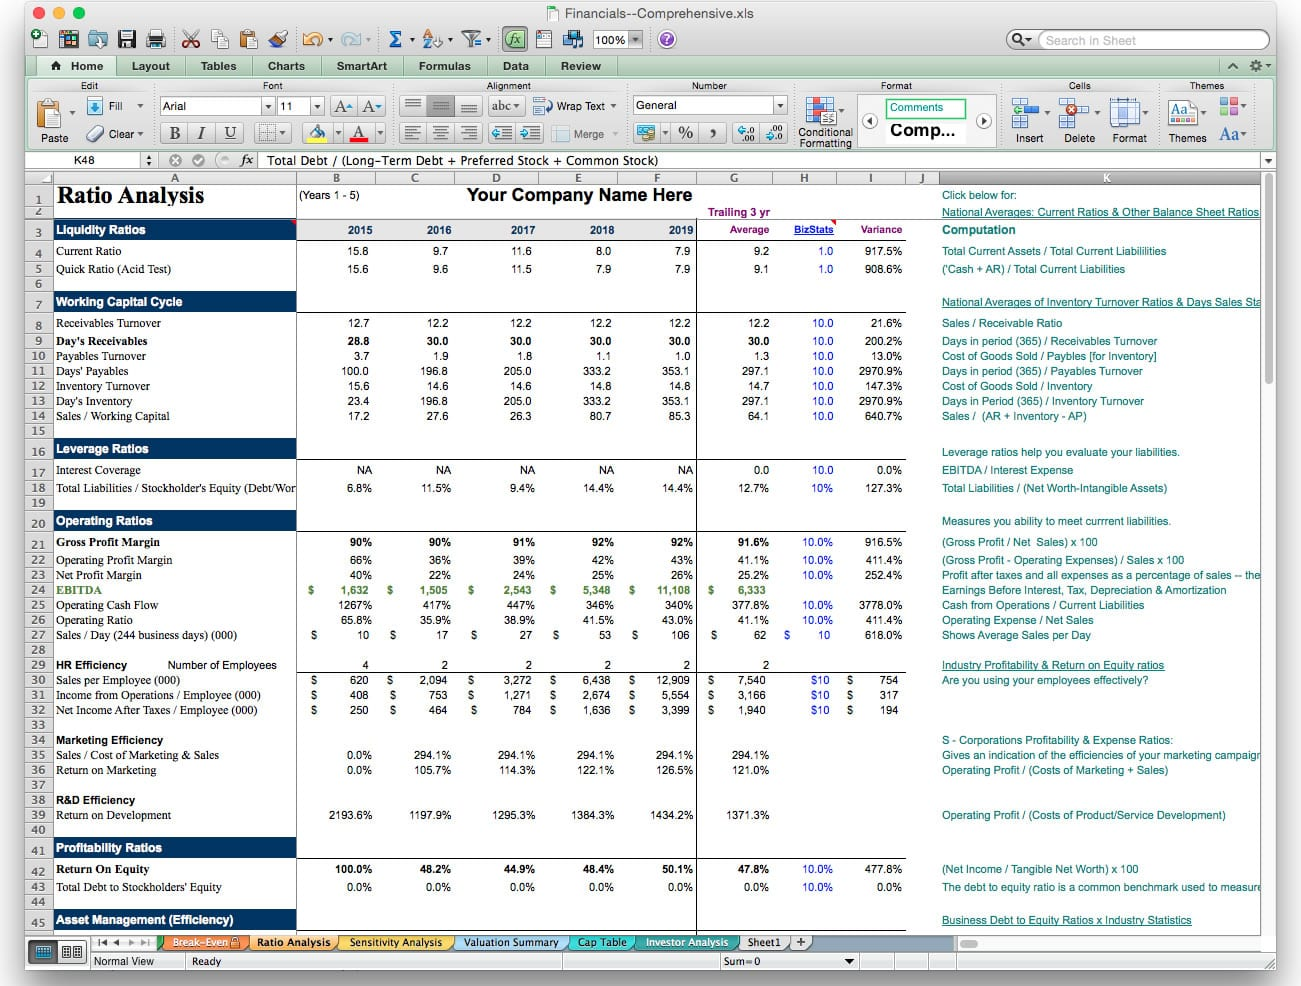 Financial Planning Excel Sheet Financial Plan Template Free Spreadsheet Templates for Busines Spreadsheet Templates for Busines Paraphrasing Create Your Own Financial Plan With This Financial Planning Template